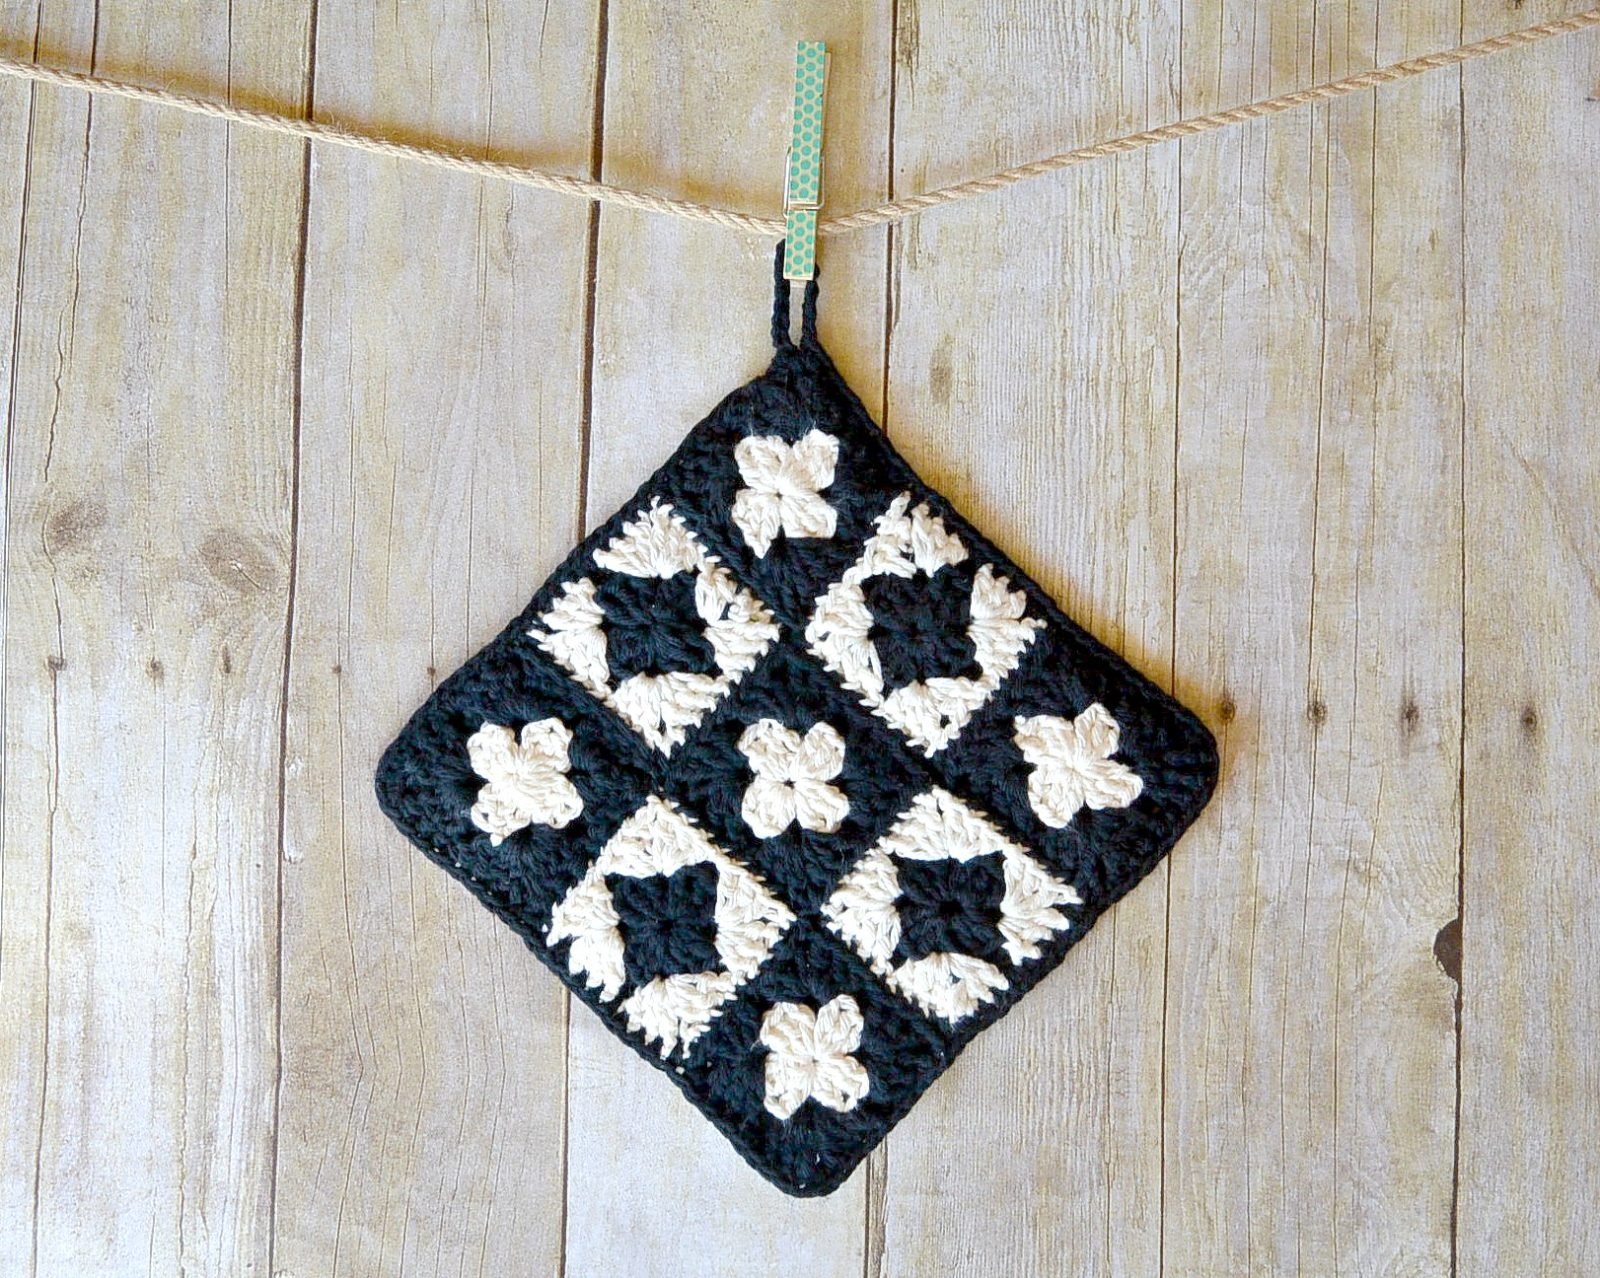 Modern Granny Square Crochet Potholder by Mama in a Stitch